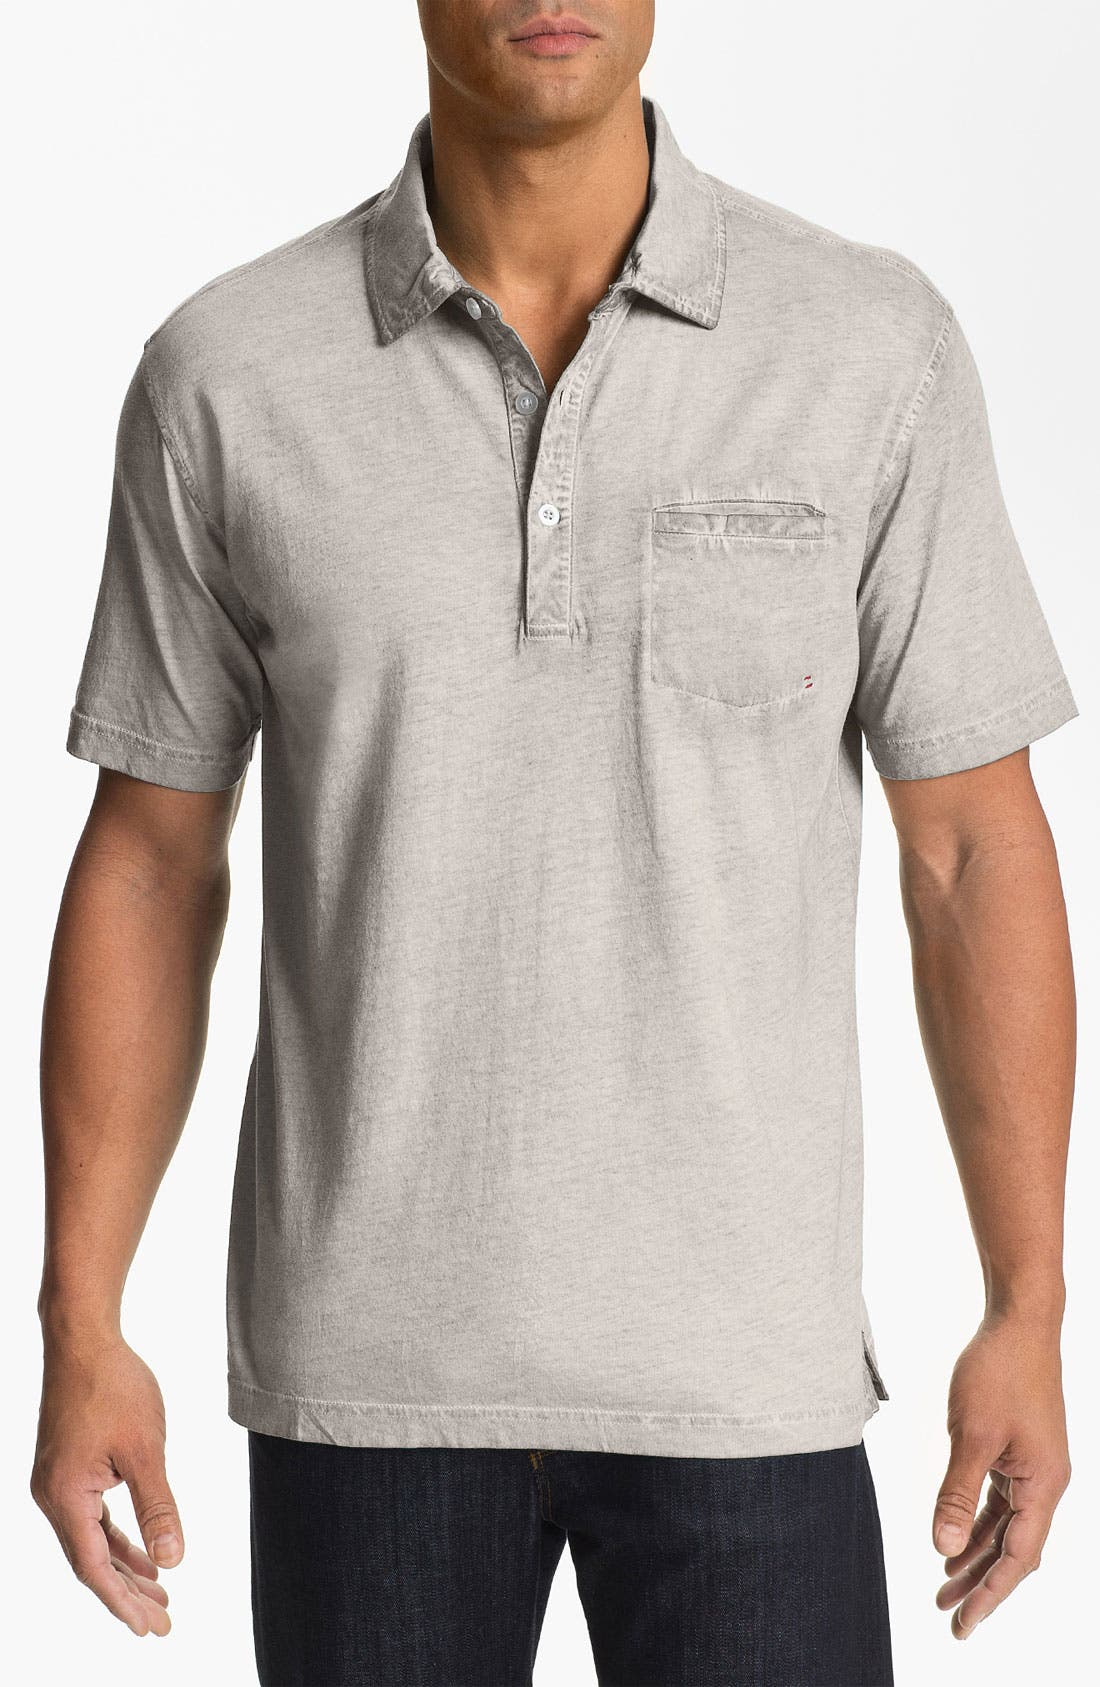 Alternate Image 1 Selected - Cutter & Buck 'Pearl' Regular Fit Polo (Big & Tall)